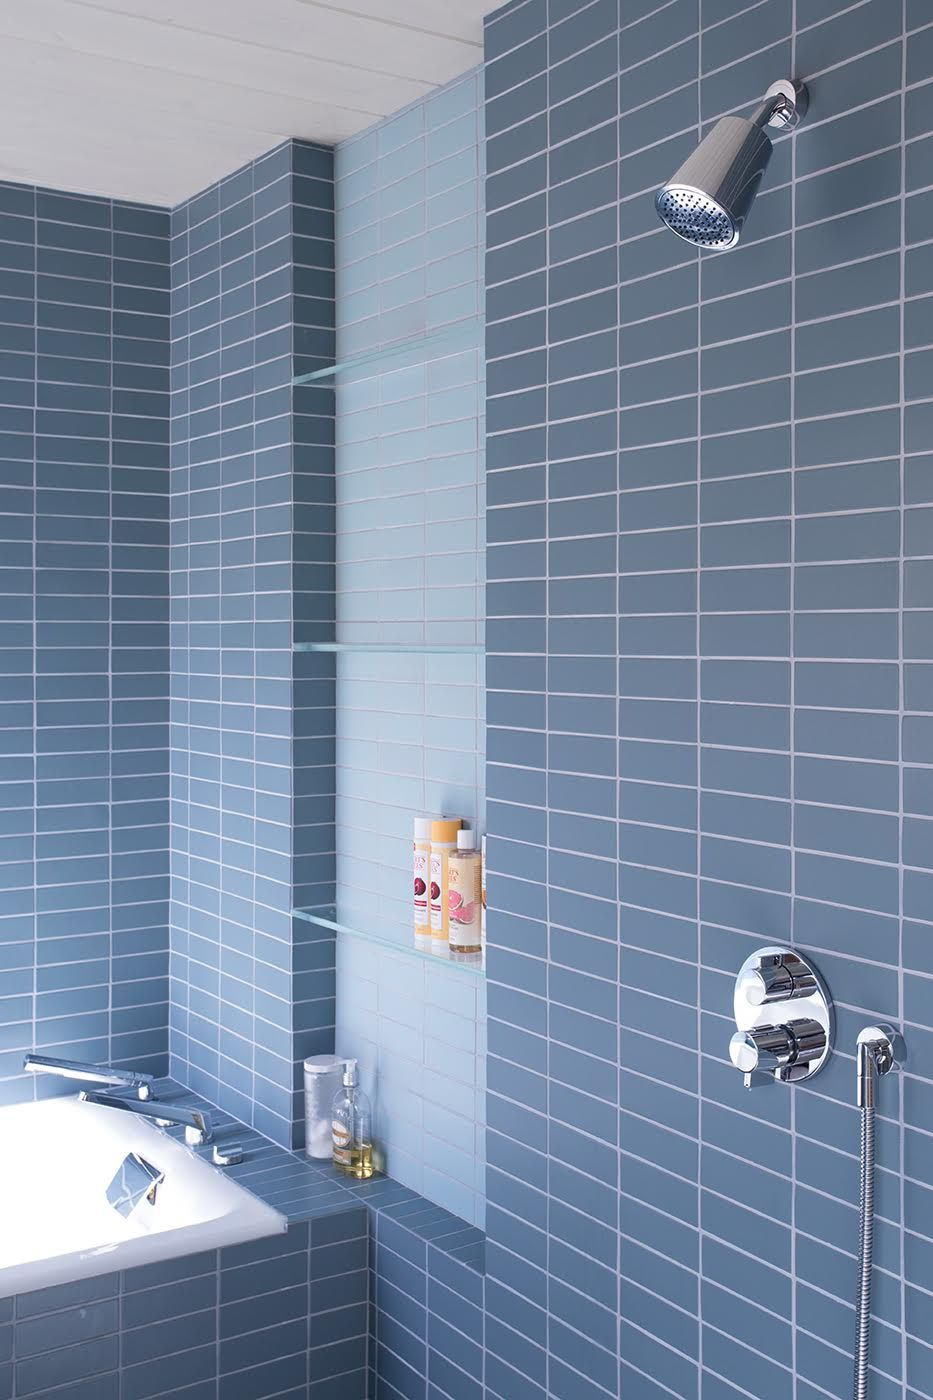 Remodeling 101: How to Choose the Right Tile Grout | Home ...